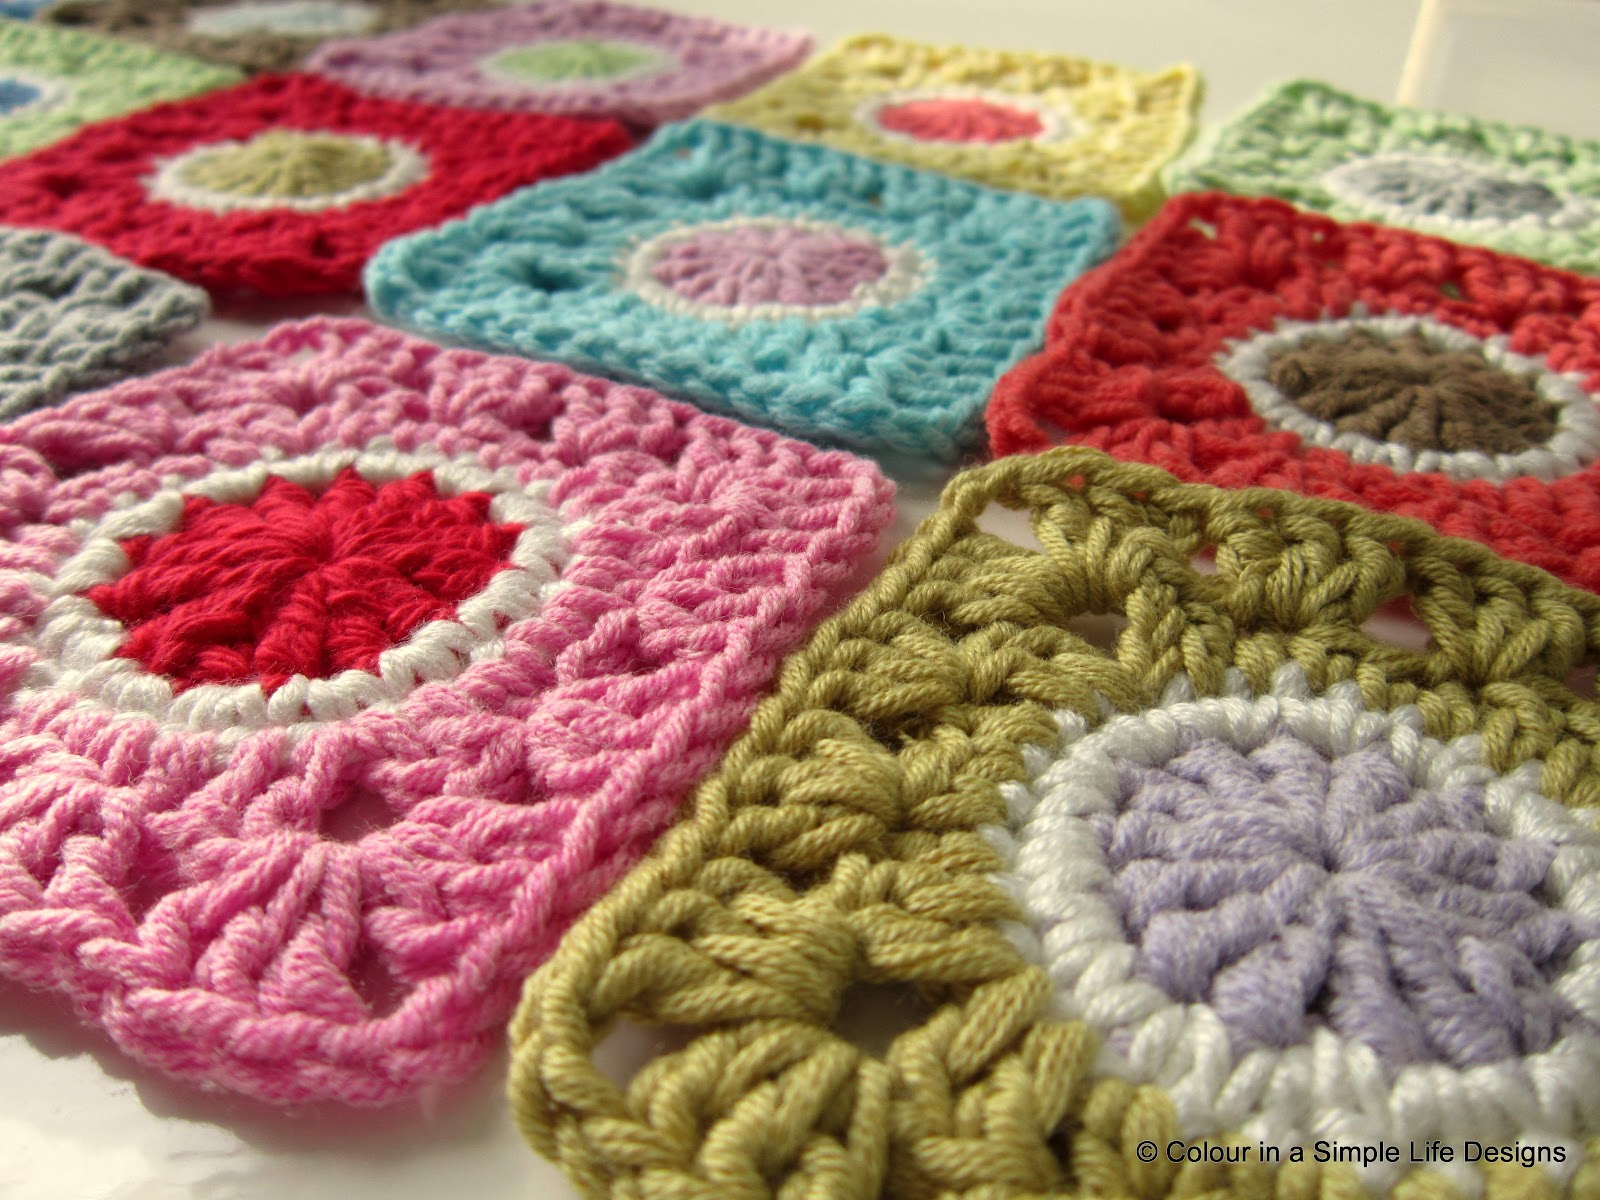 Crocheting Uk : ... ://www.etsy.com/listing/109617763/grannys-gone-dotty-square-crochet